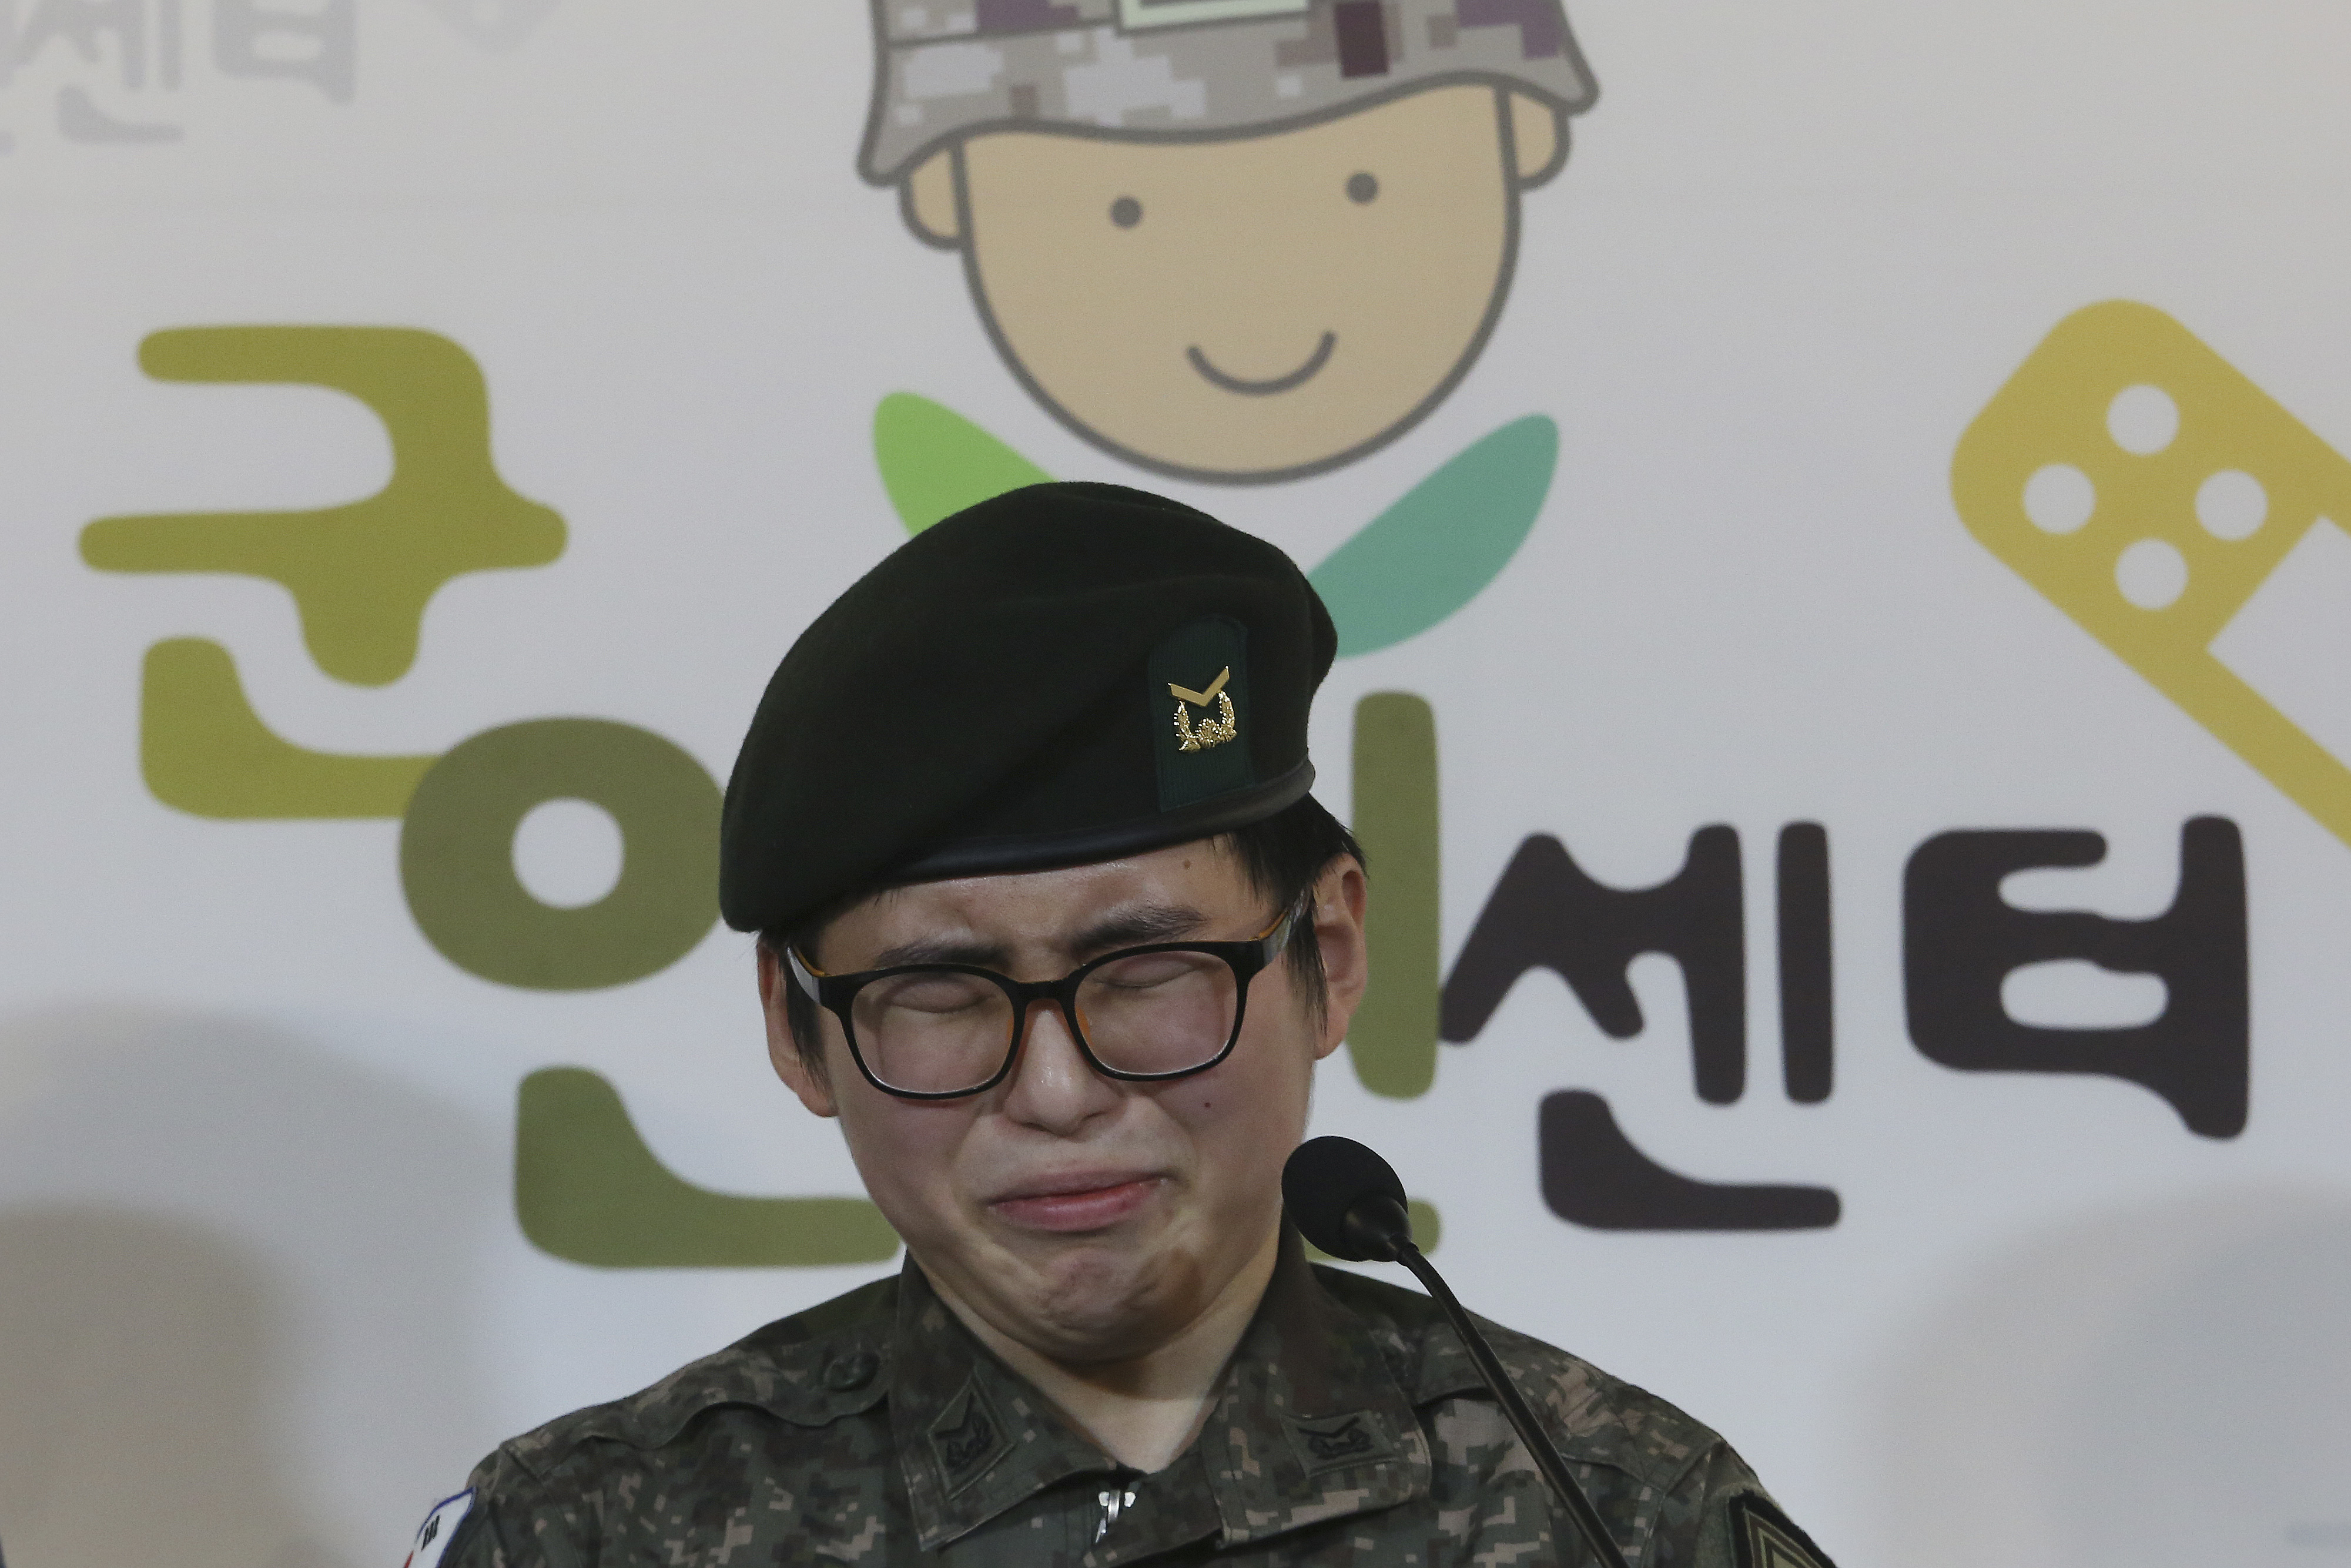 South Korean army Sergeant Byun Hui-su weeps during a press conference at the Center for Military Human Right Korea in Seoul, South Korea, on Jan. 22, 2020.